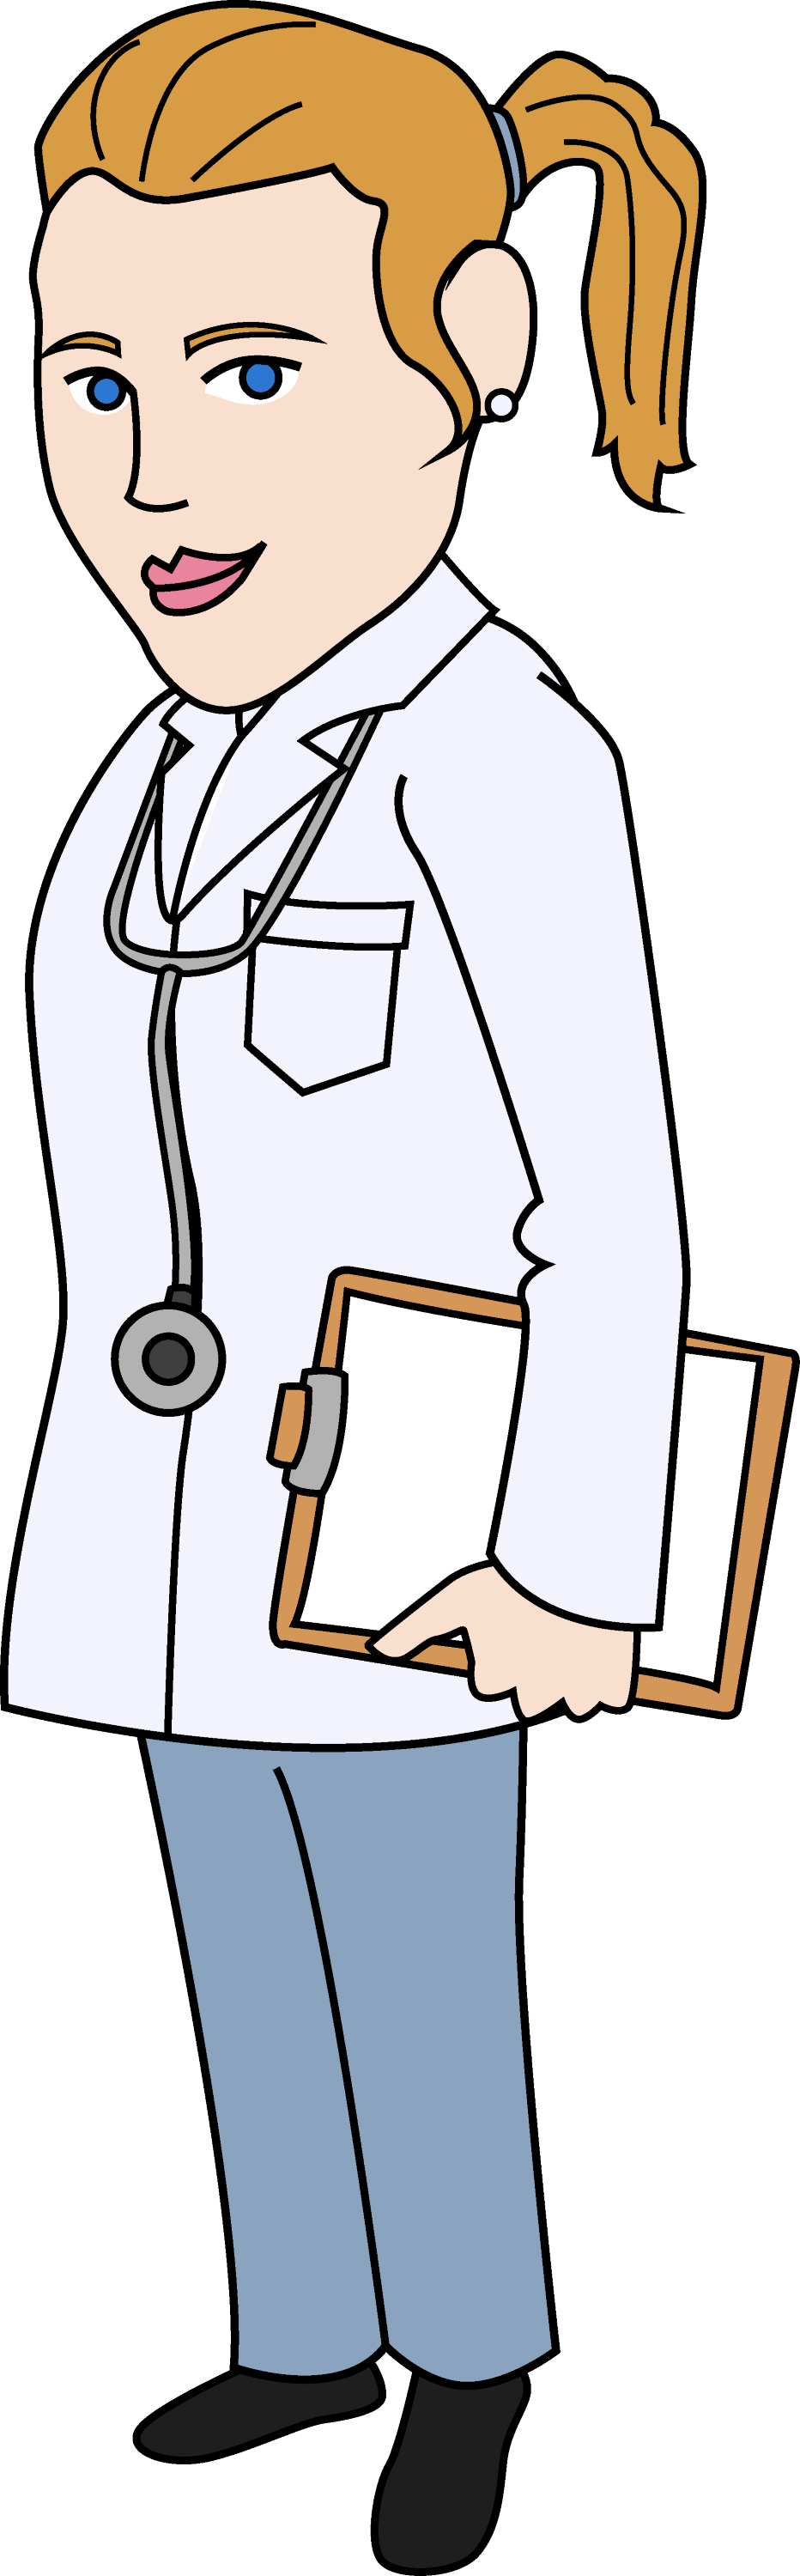 Clip Art Clipart Doctor doctor clip art illustration free of a female doctor